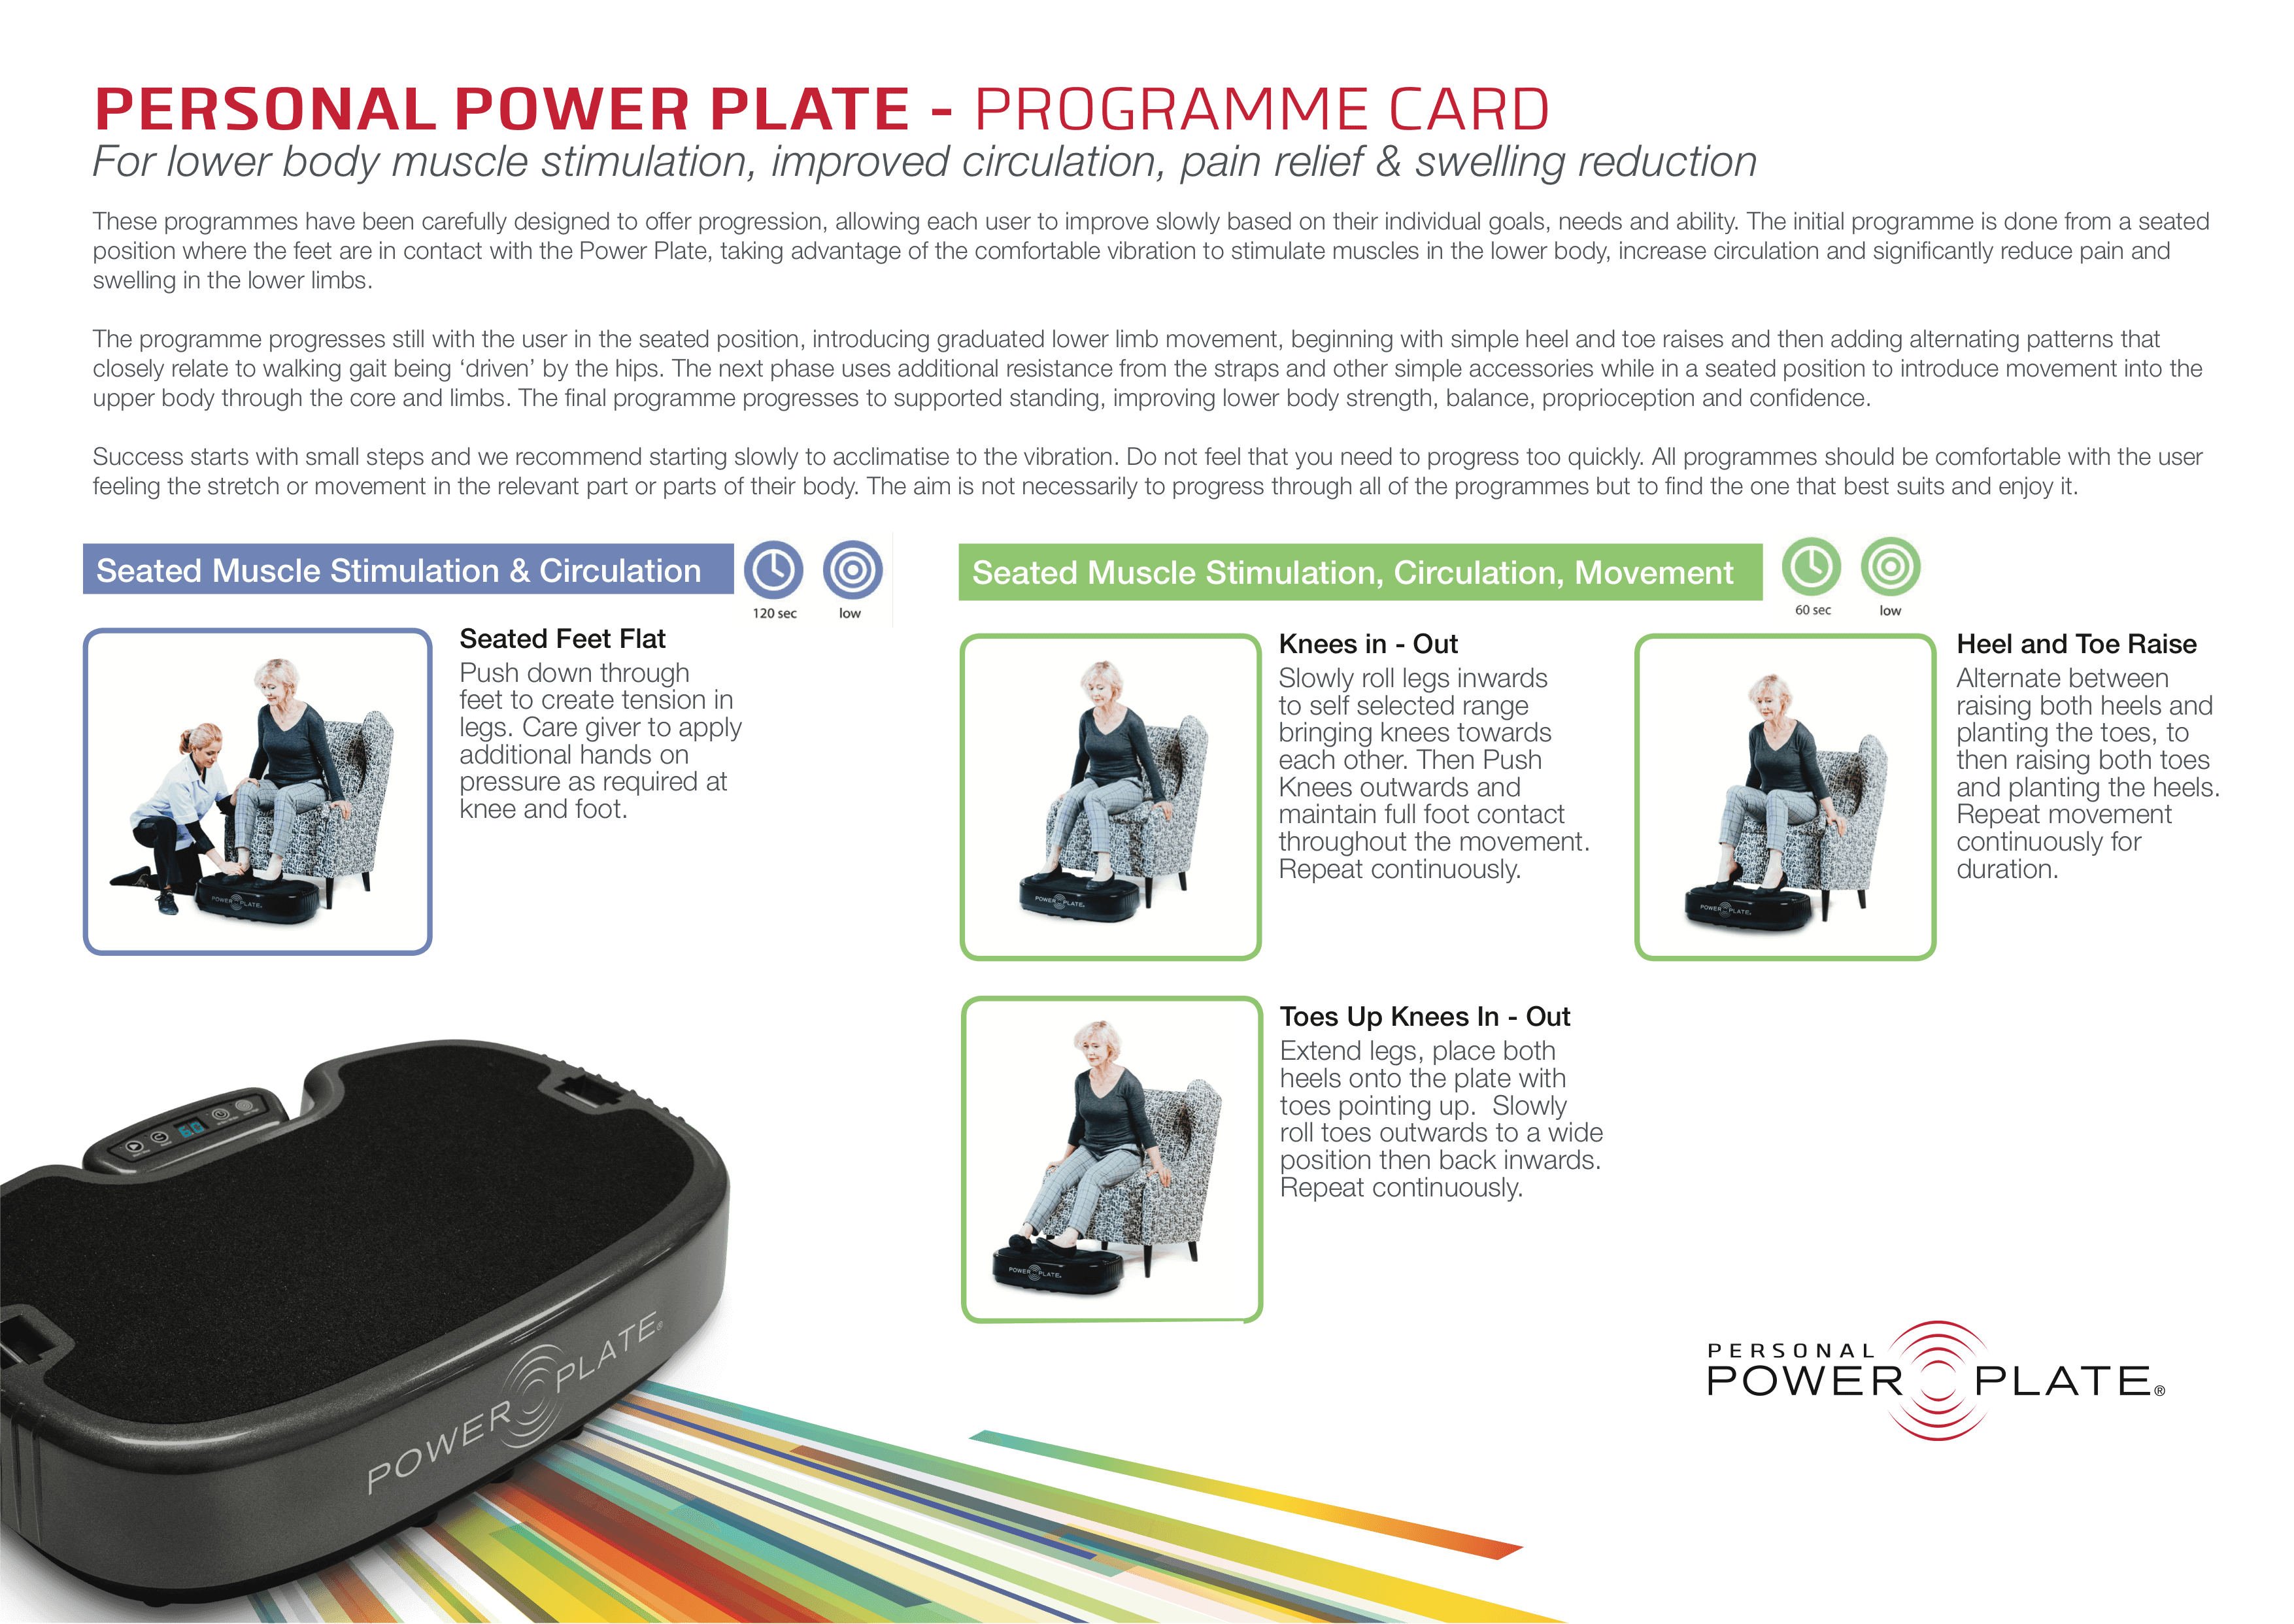 Personal Power Plate chair guide